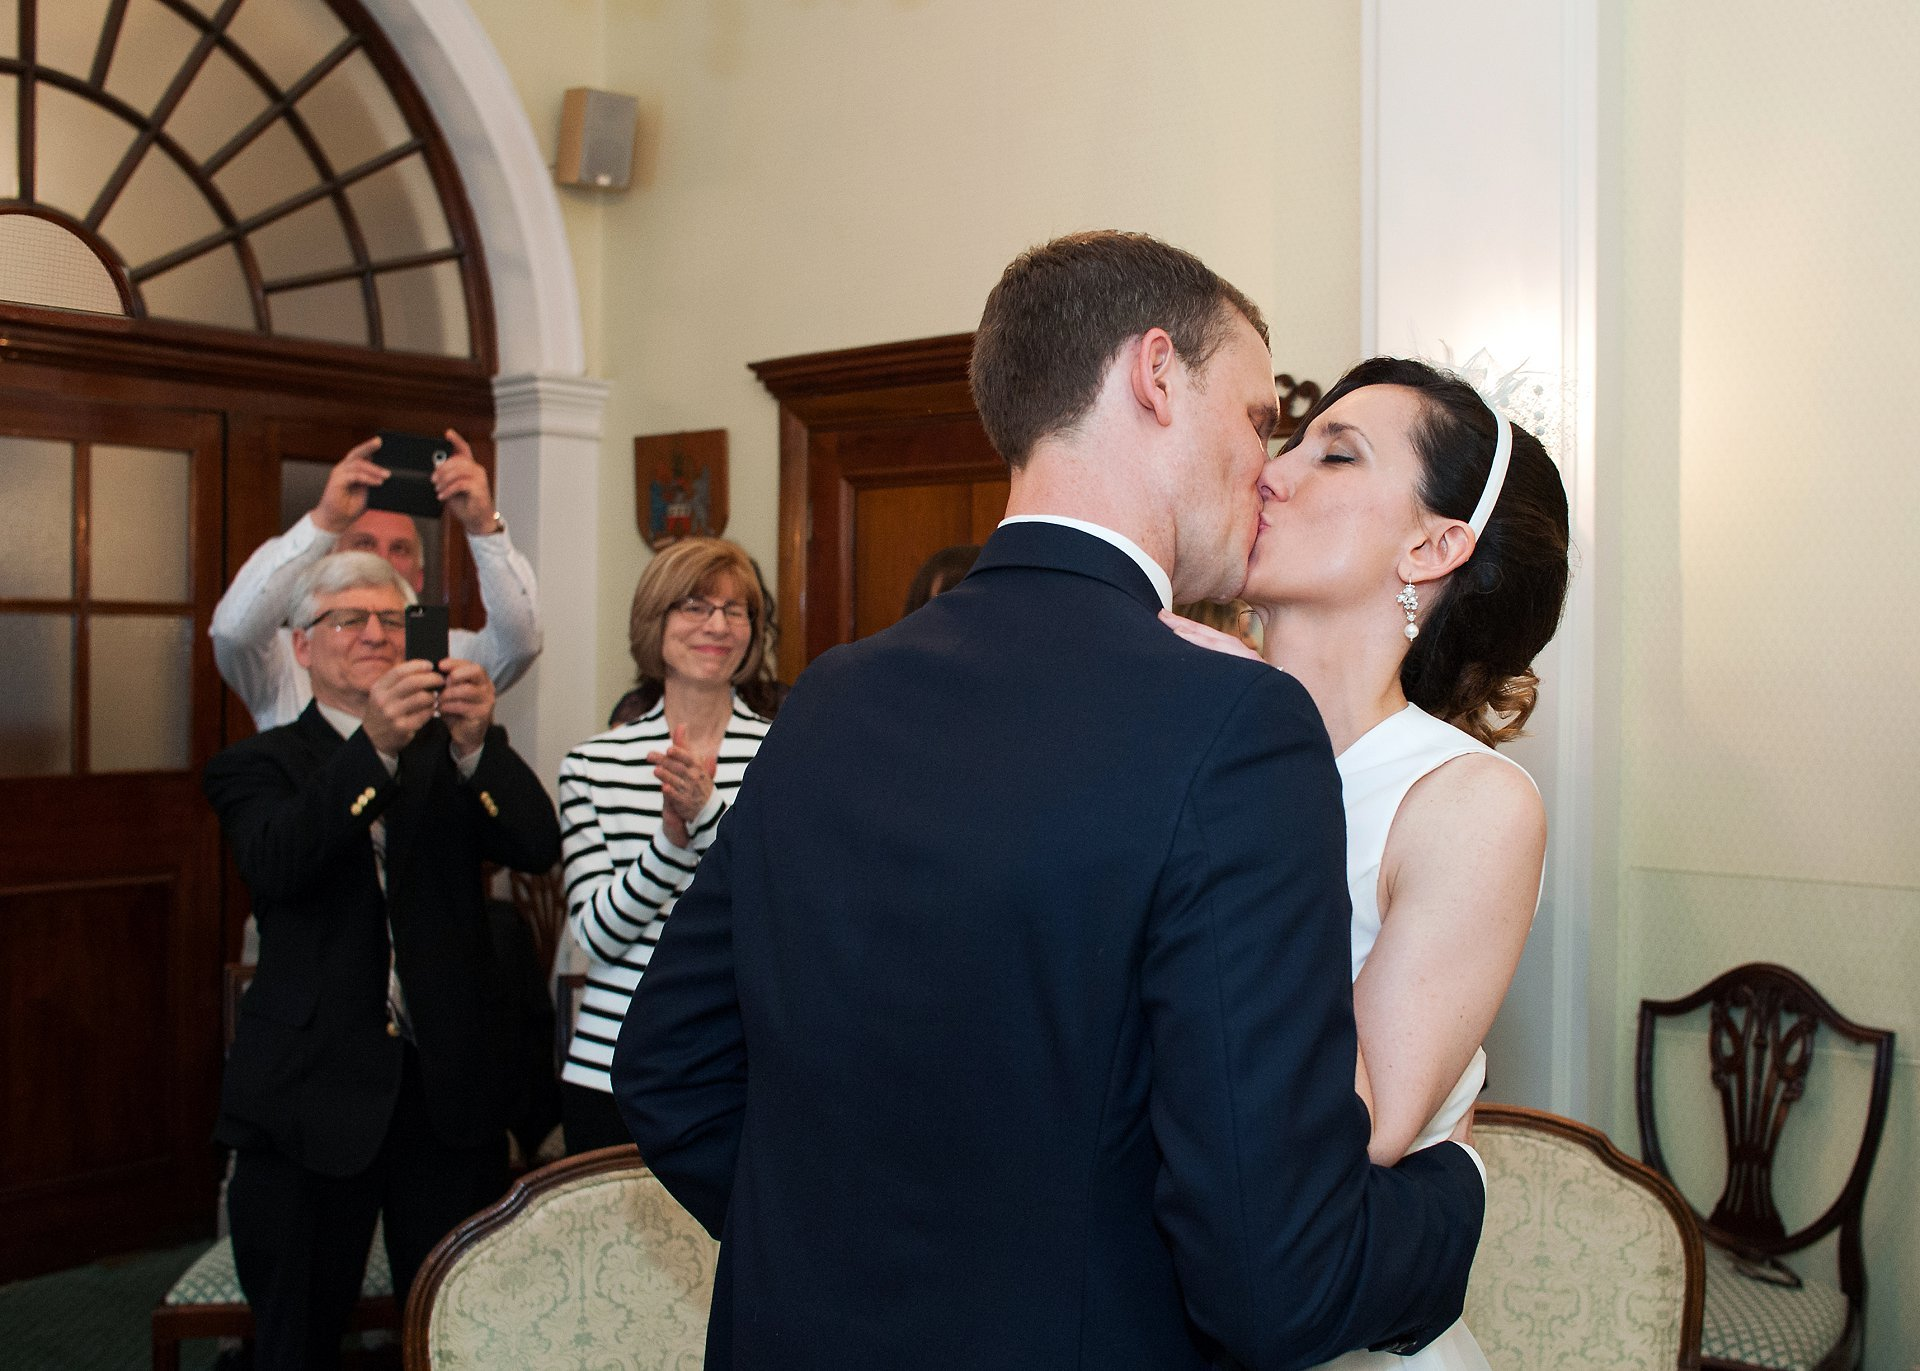 Guests take a photo of a bide and groom kissing to celebrate their Rossetti Room marriage